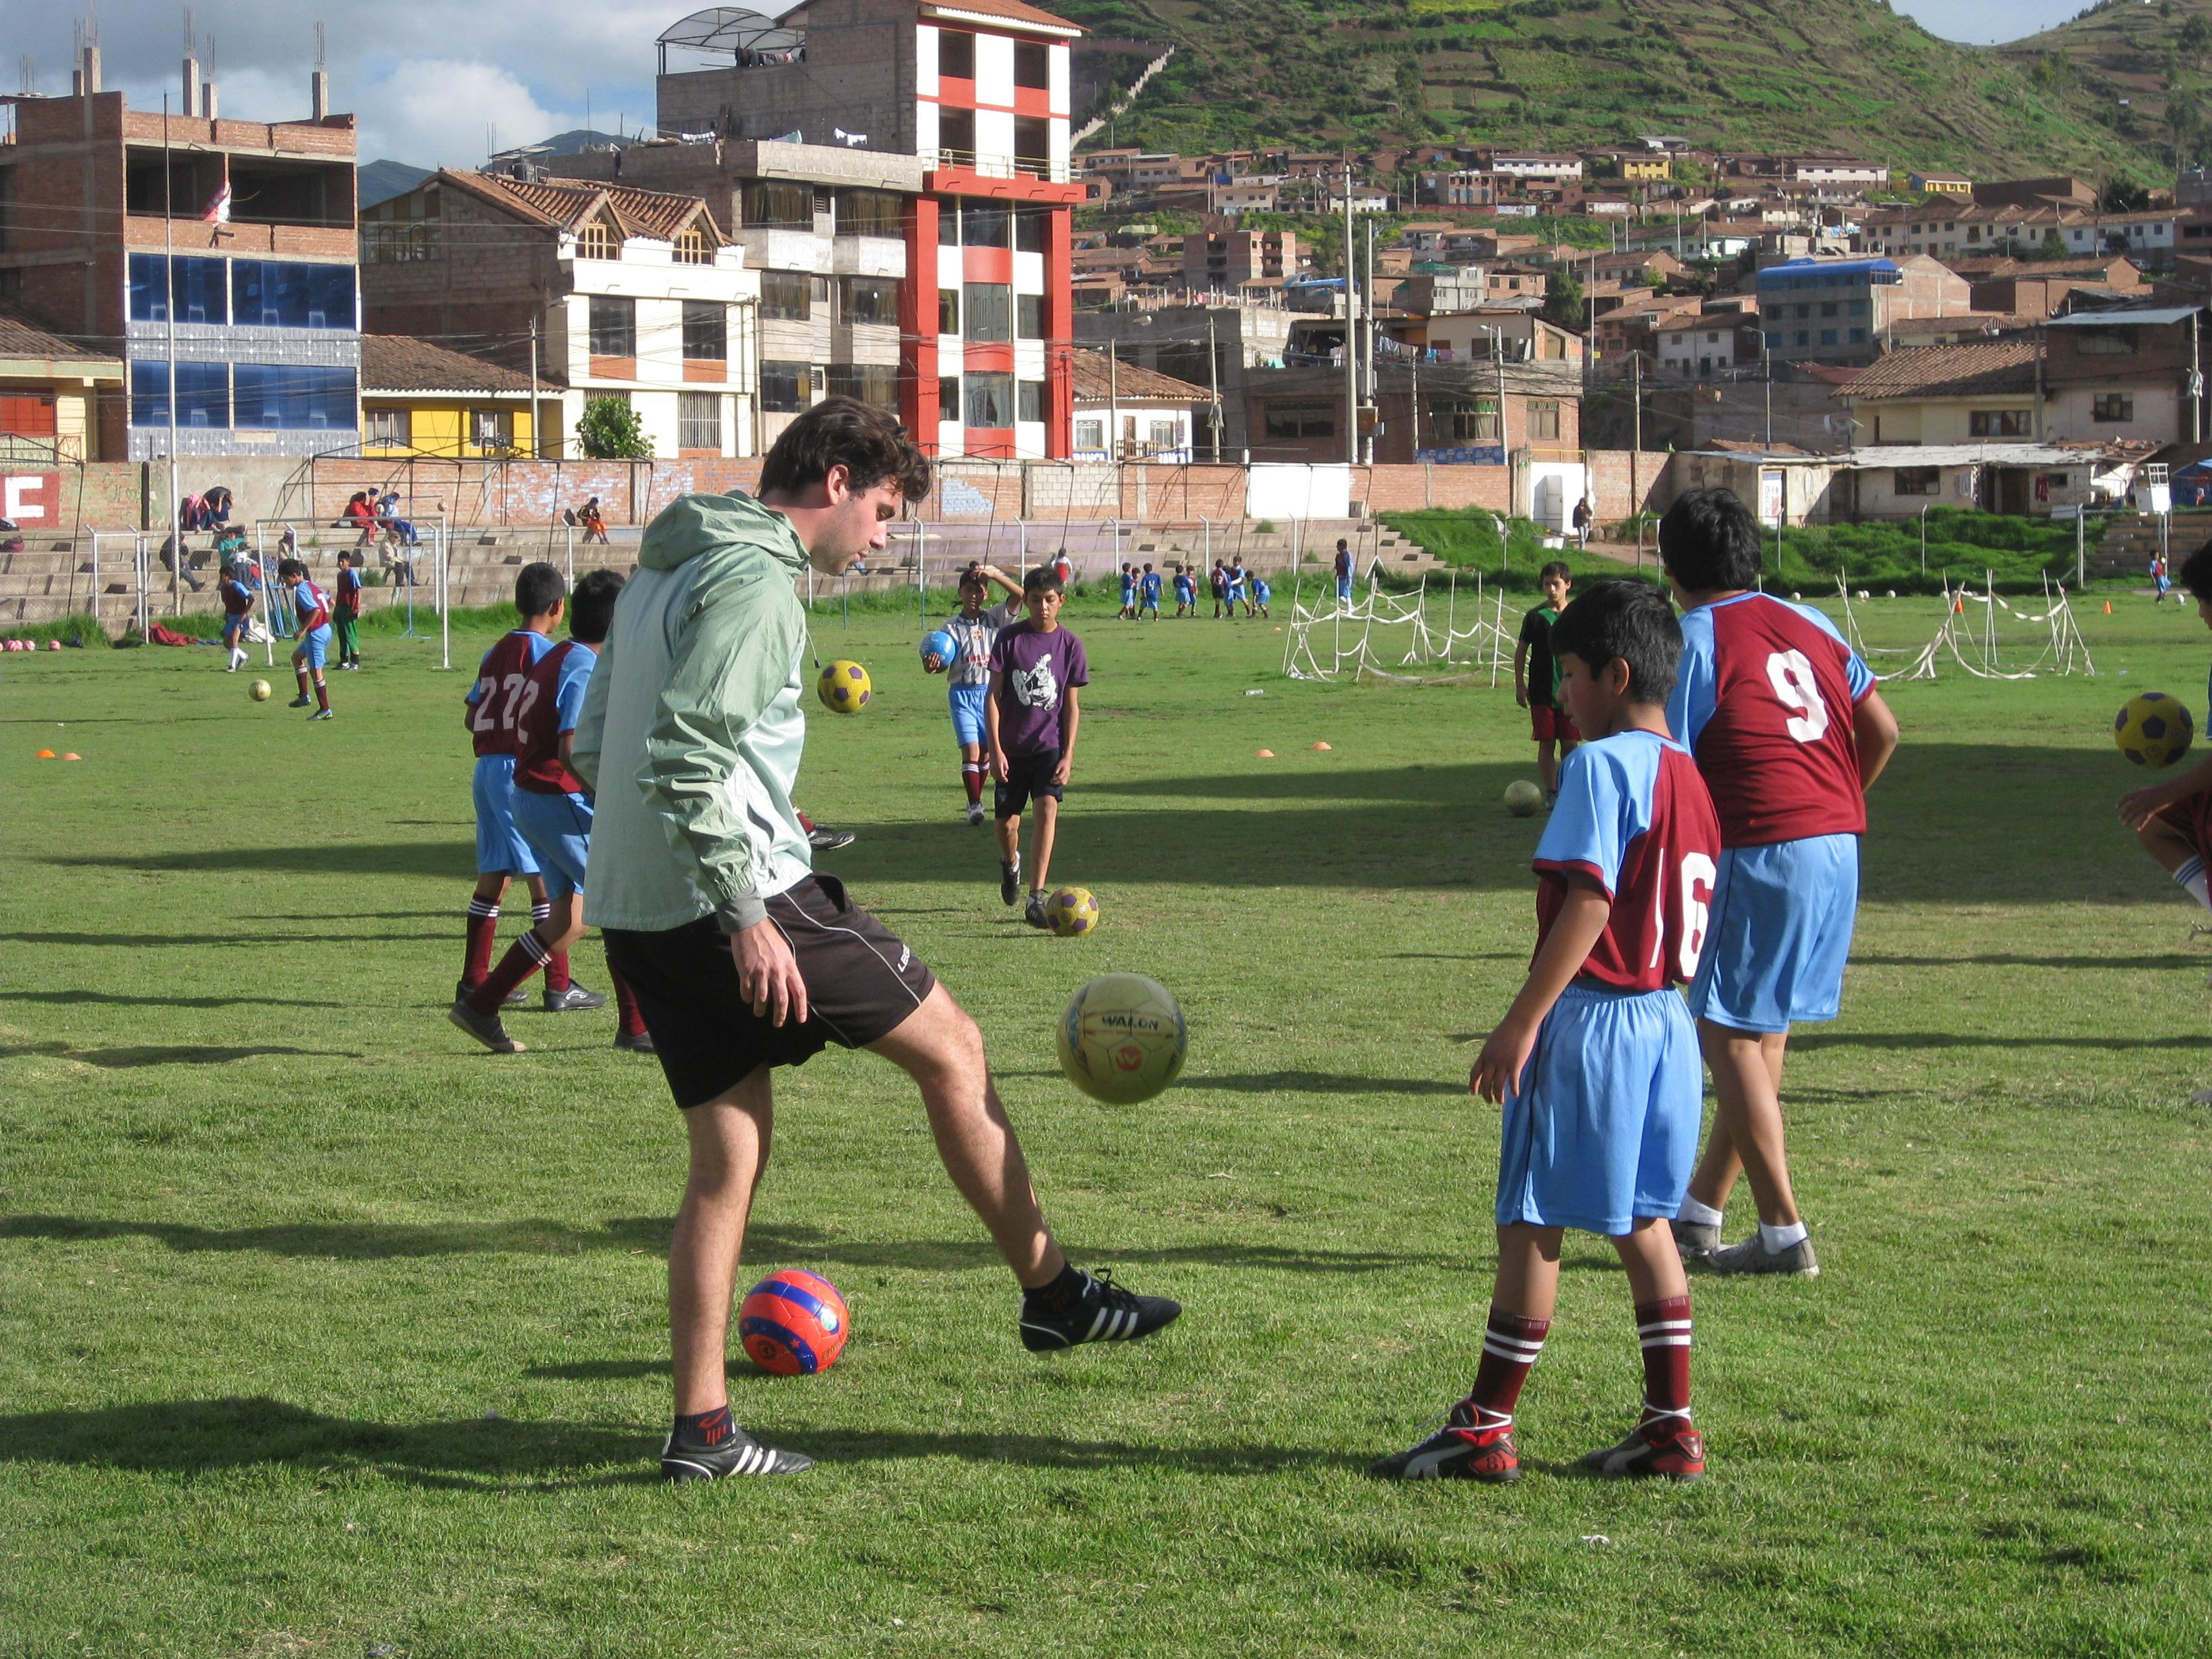 A Projects Abroad volunteer gets hands-on coaching experience in Peru working with school children